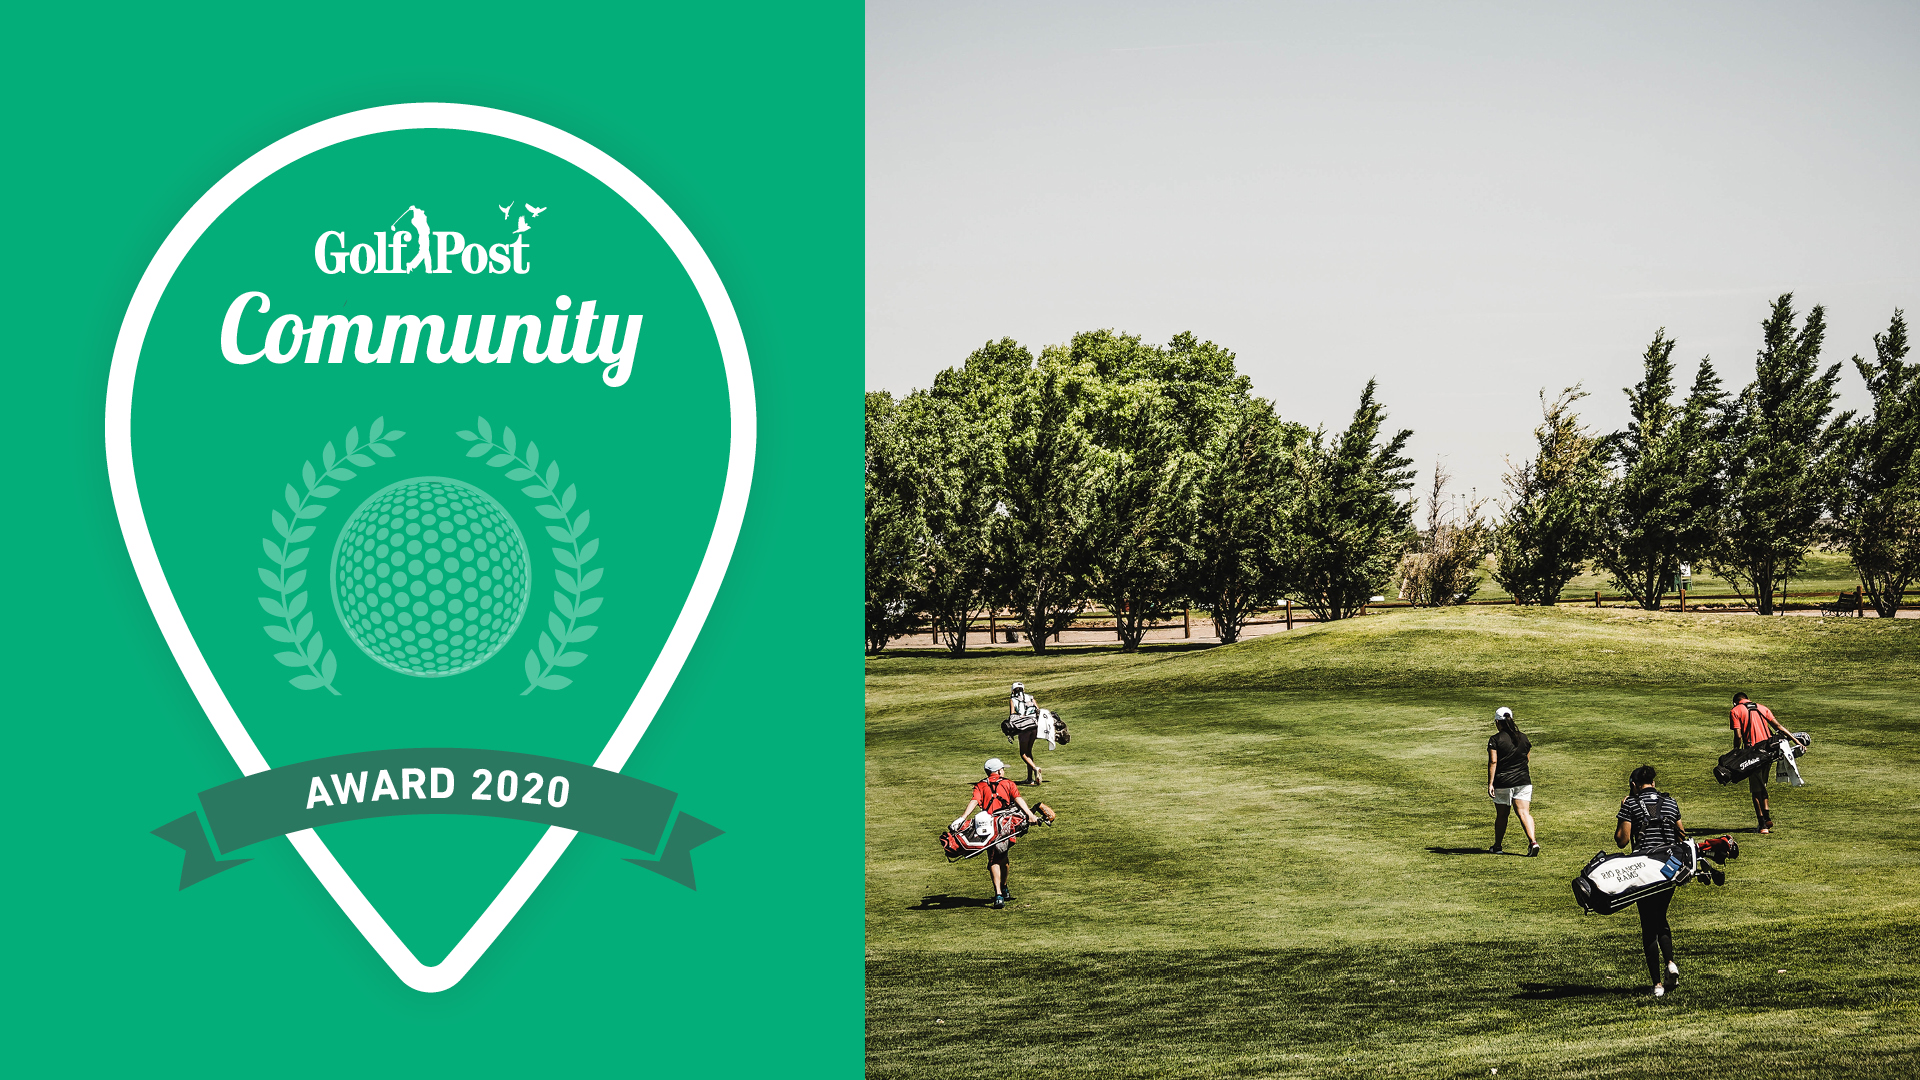 Der Golf Post Community Award 2020 - Golf Post